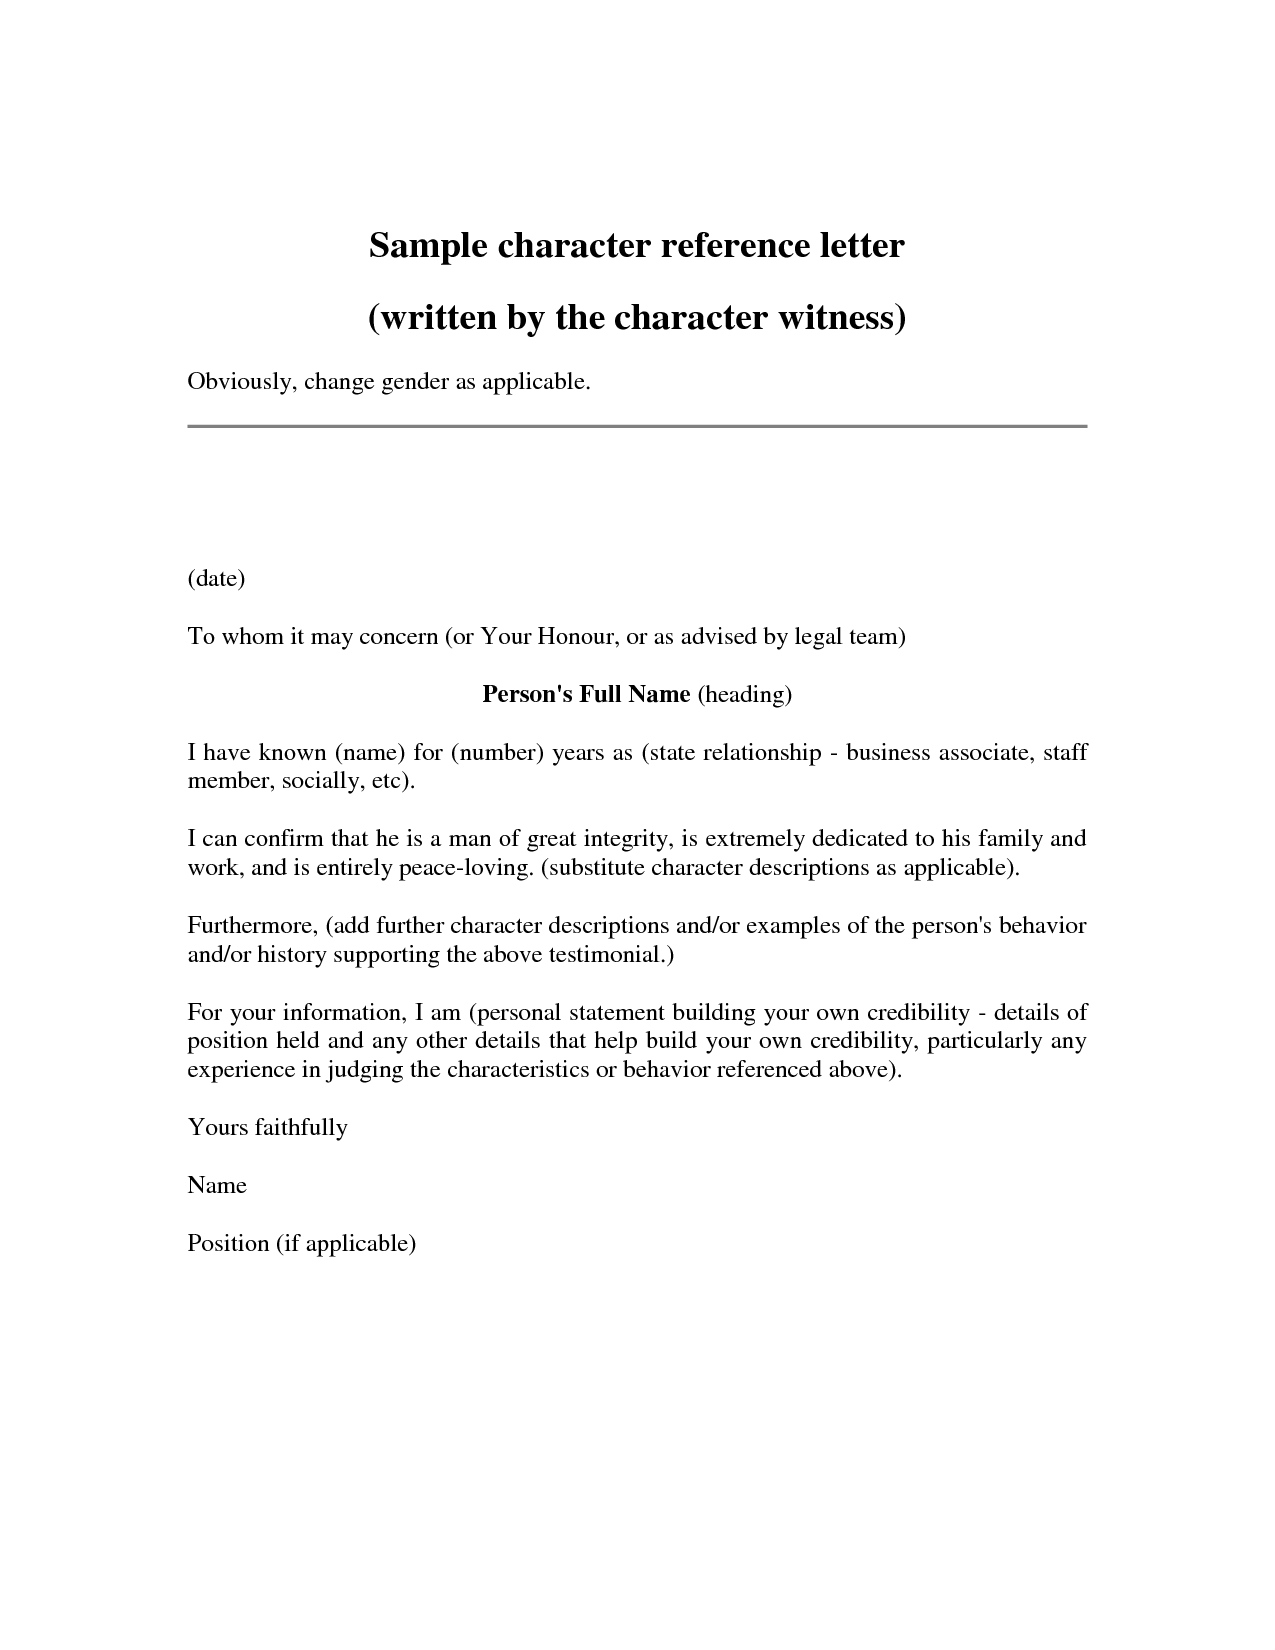 sample of personal reference letter sample character reference letter 8240